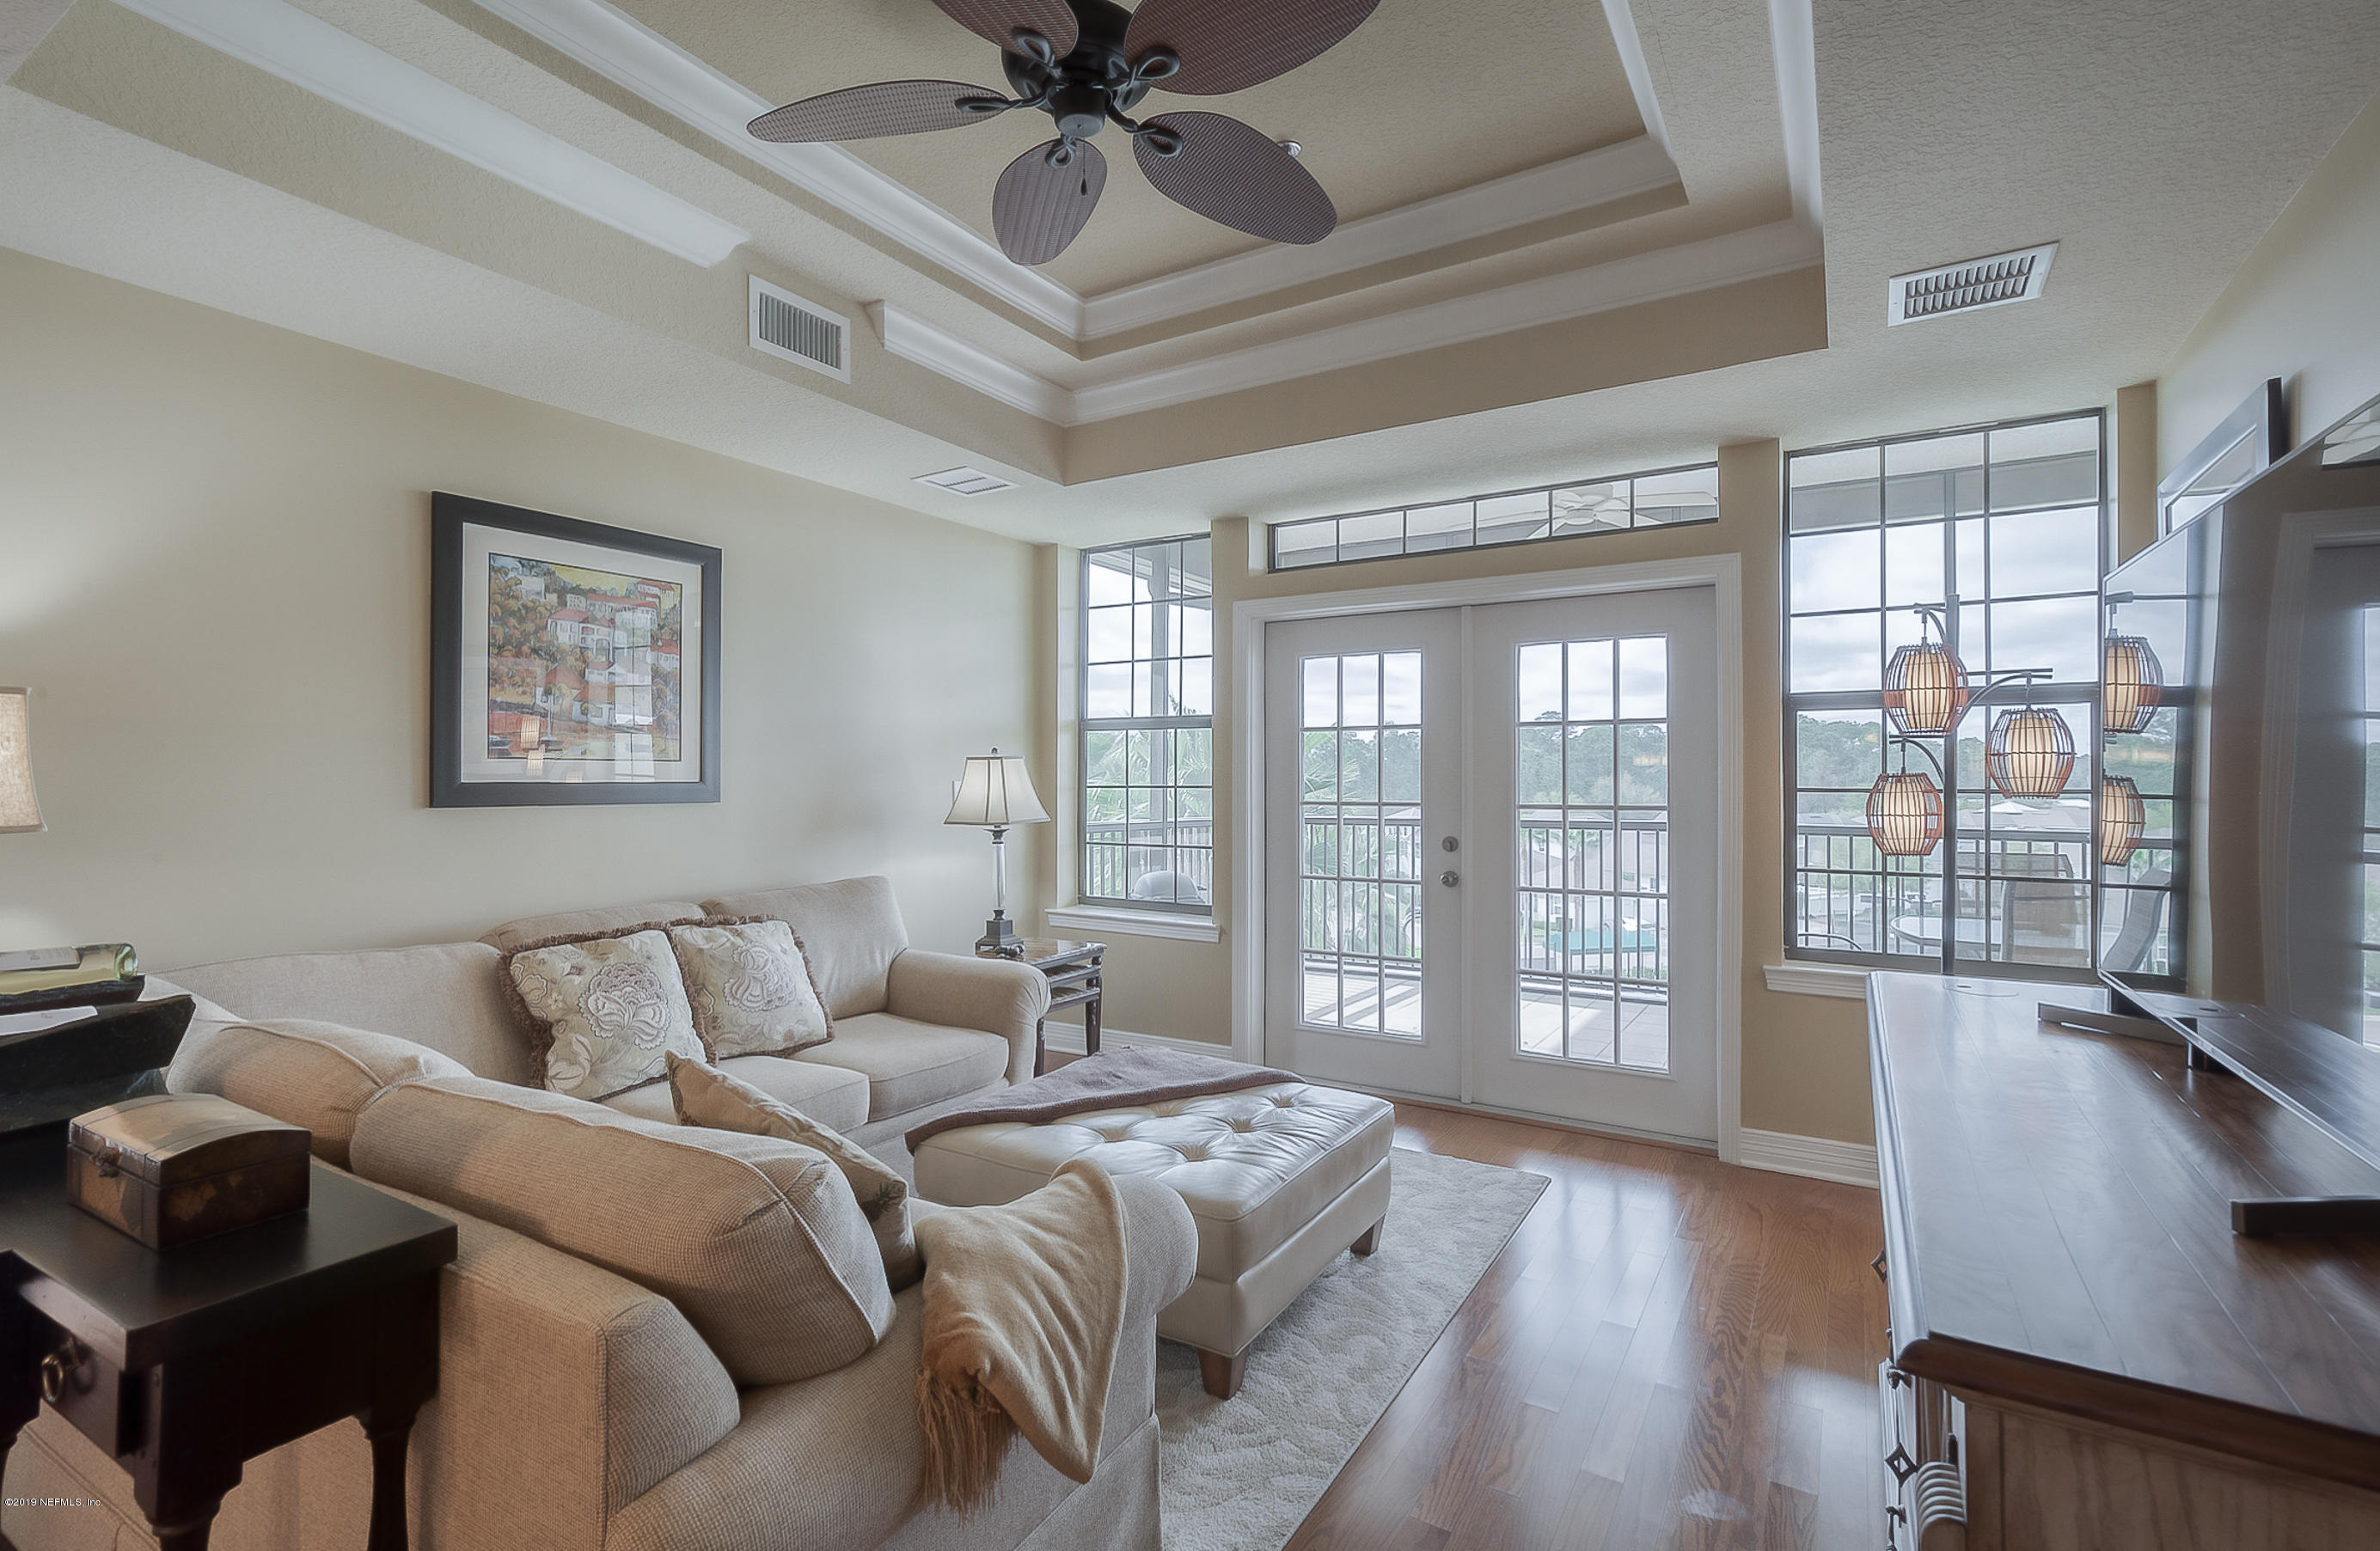 701 MARKET, ST AUGUSTINE, FLORIDA 32095, 2 Bedrooms Bedrooms, ,2 BathroomsBathrooms,Residential - condos/townhomes,For sale,MARKET,983206